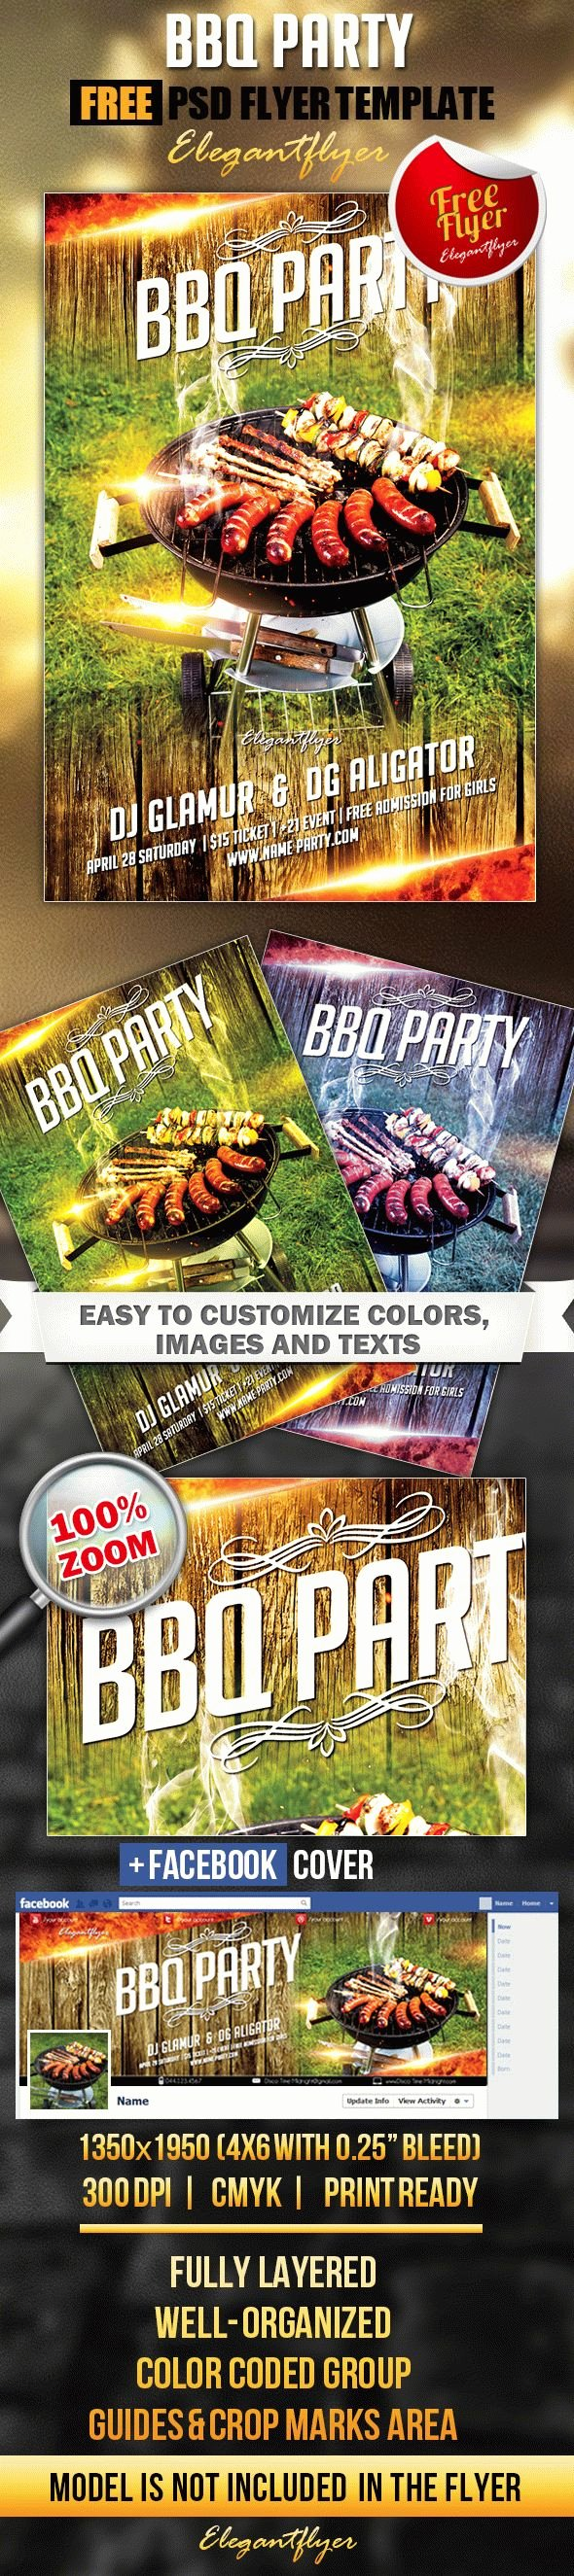 Barbeque Flyer Templates Free Beautiful Bbq Party Free Flyer Psd Template Cover